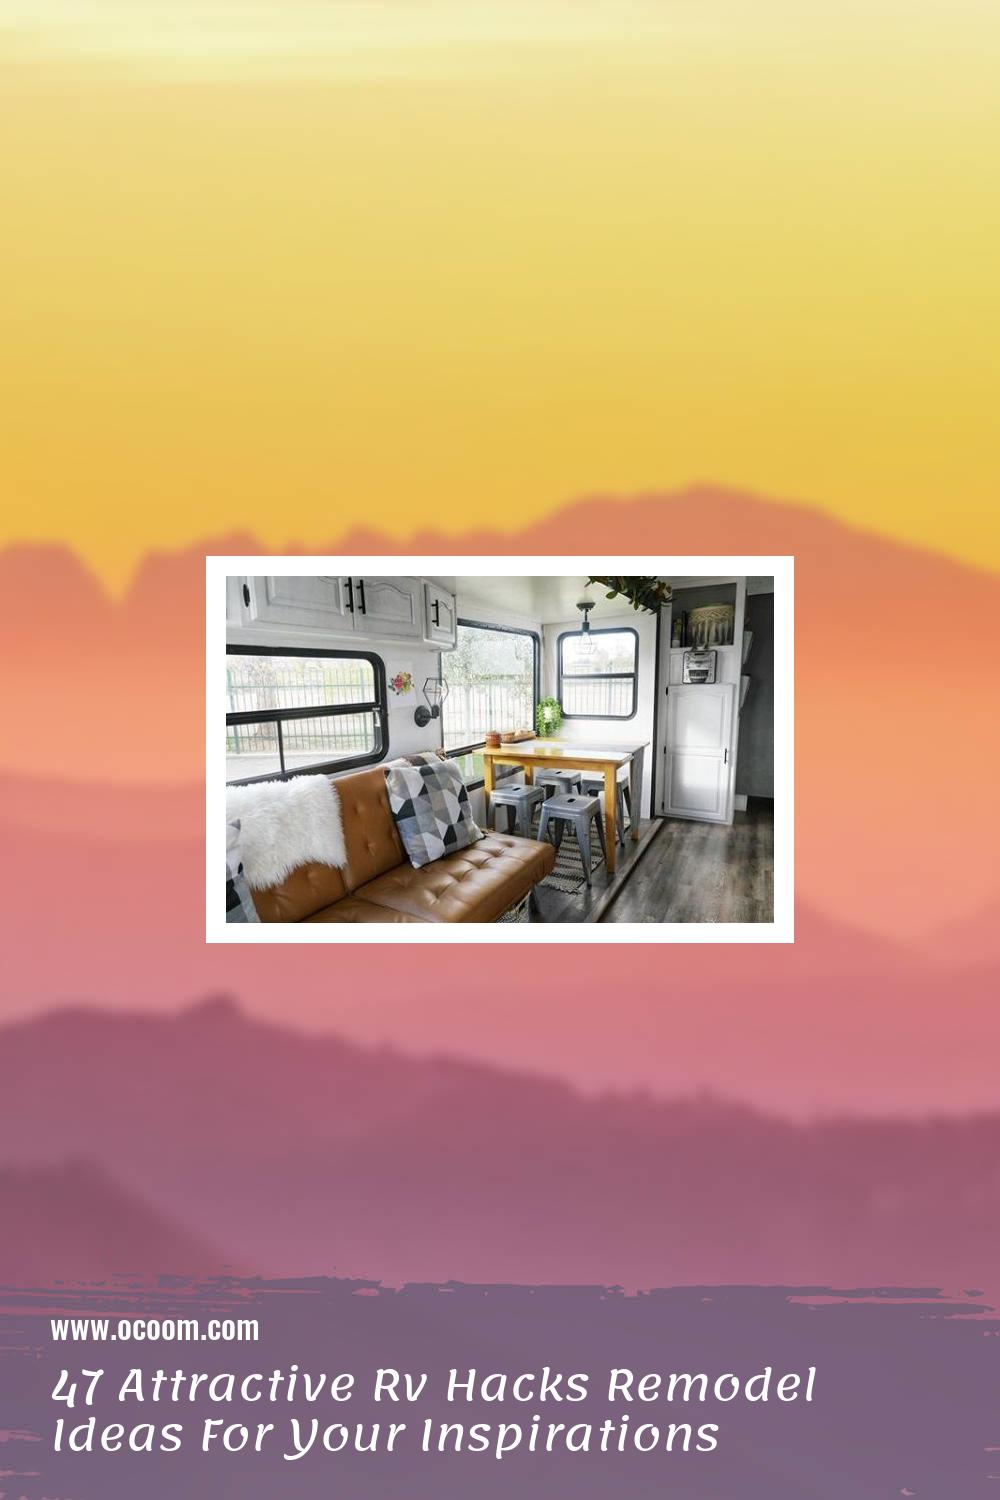 47 Attractive Rv Hacks Remodel Ideas For Your Inspirations 43